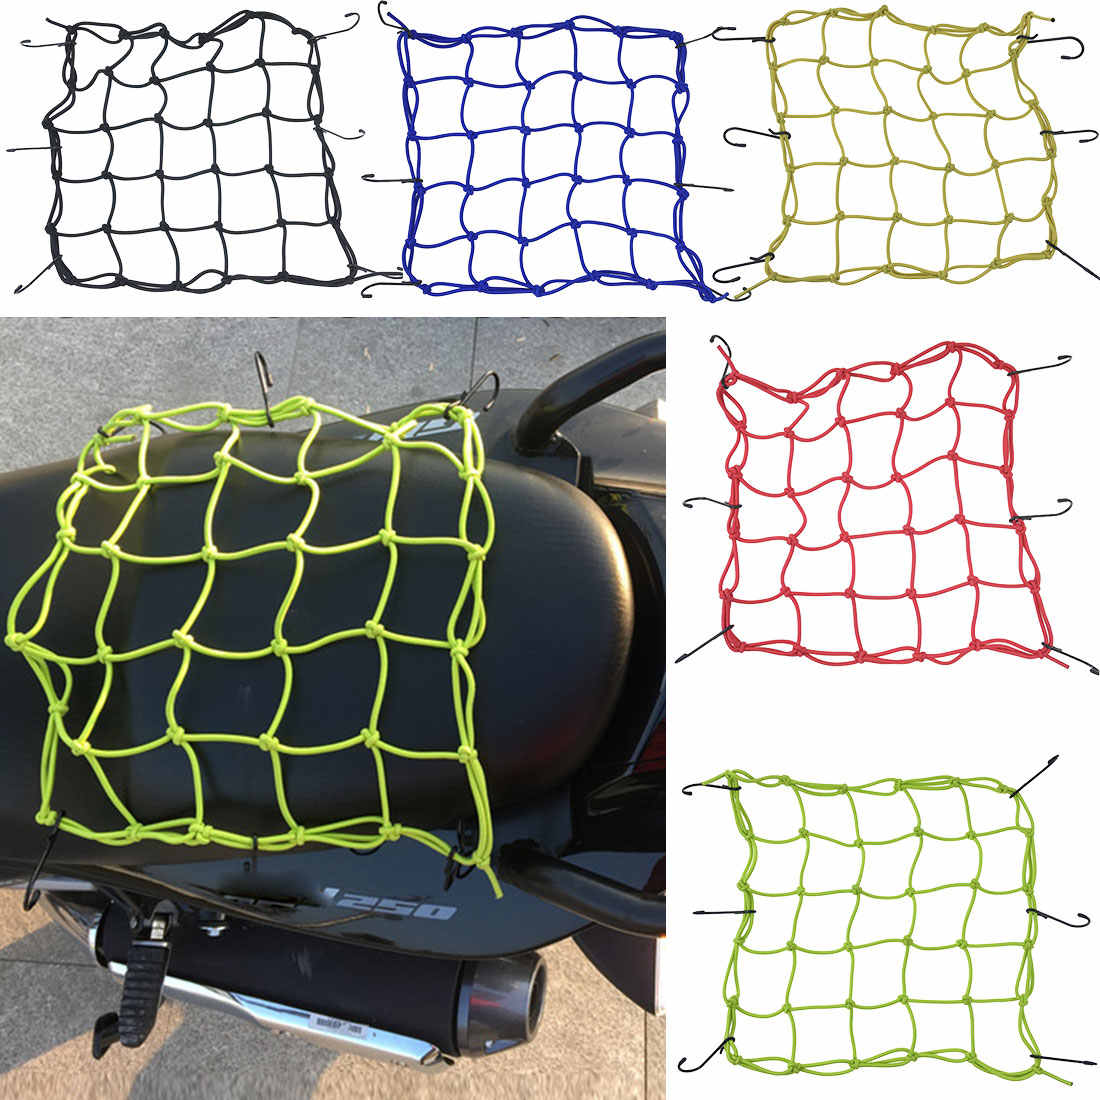 Accessories Bicycle Cargo Net 30*30cm Carrier Racks Bike Luggage Package Hot